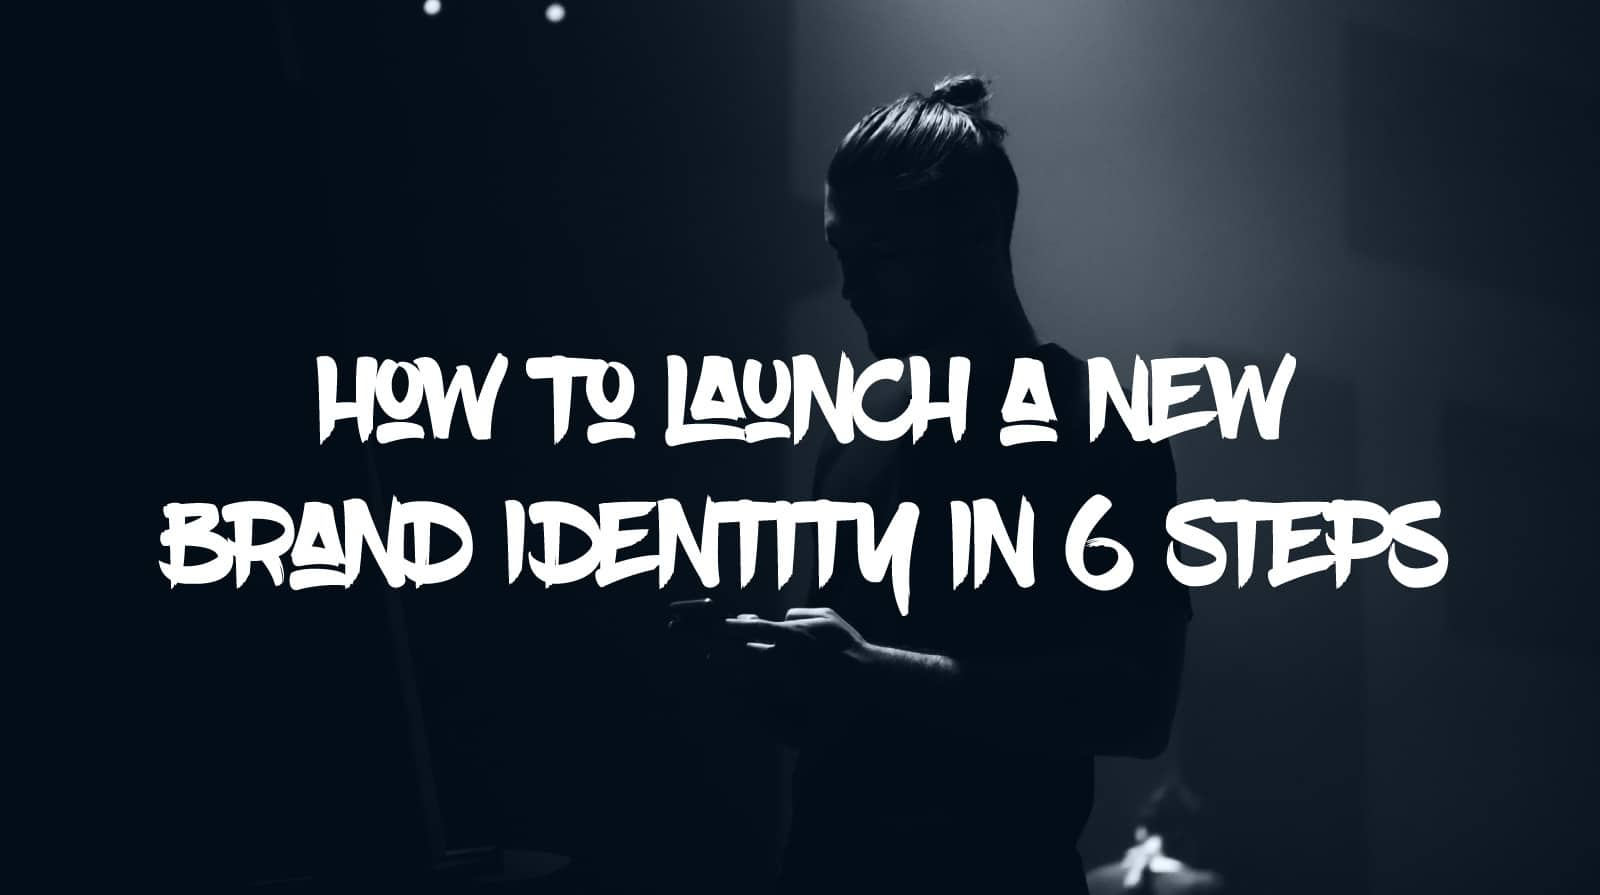 How to Launch a New Brand Identity in 6 Steps